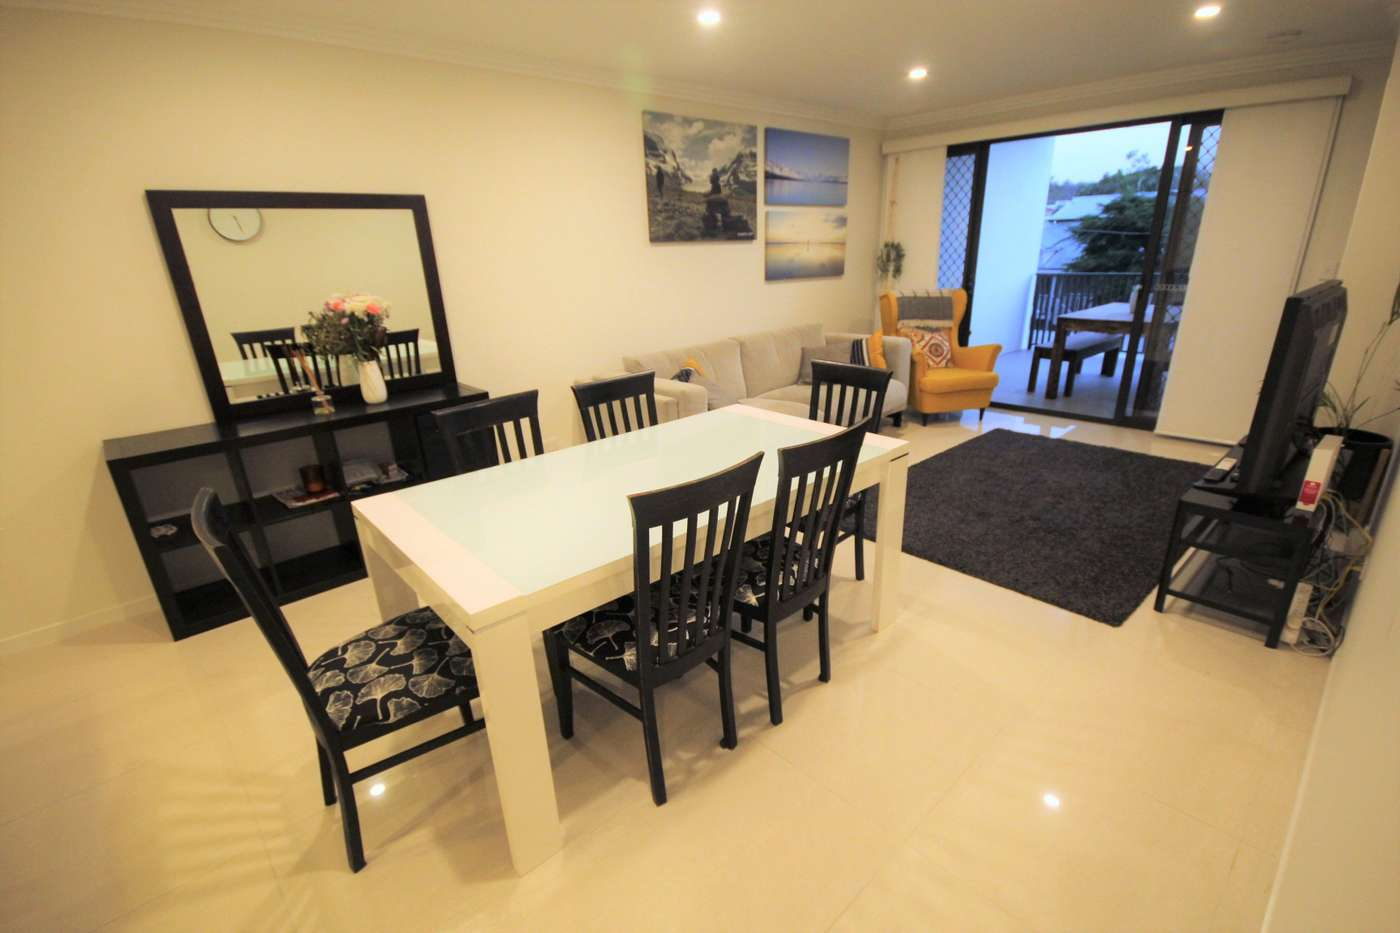 Main view of Homely unit listing, 10/14 Pashen Street, Morningside, QLD 4170